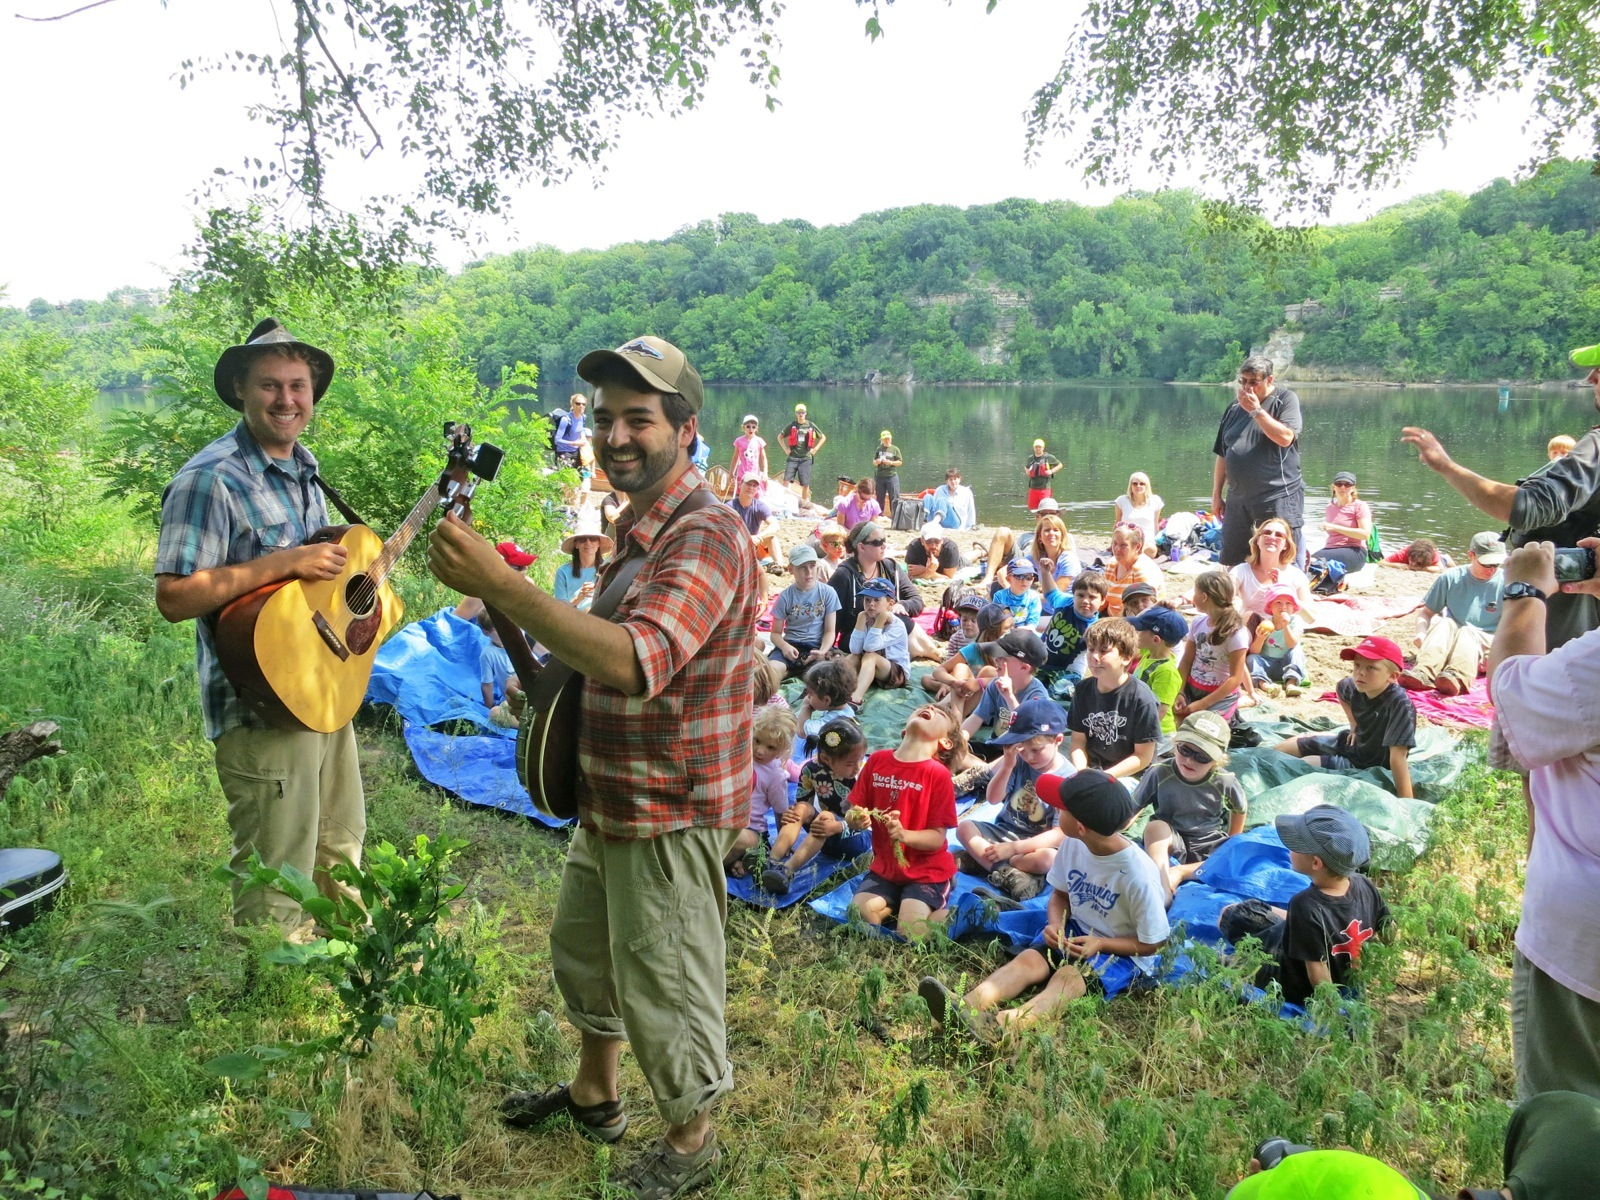 Two musicians from the Okee Dokee Brothers entertain a crowd of people sitting on the banks of the Mississippi River.